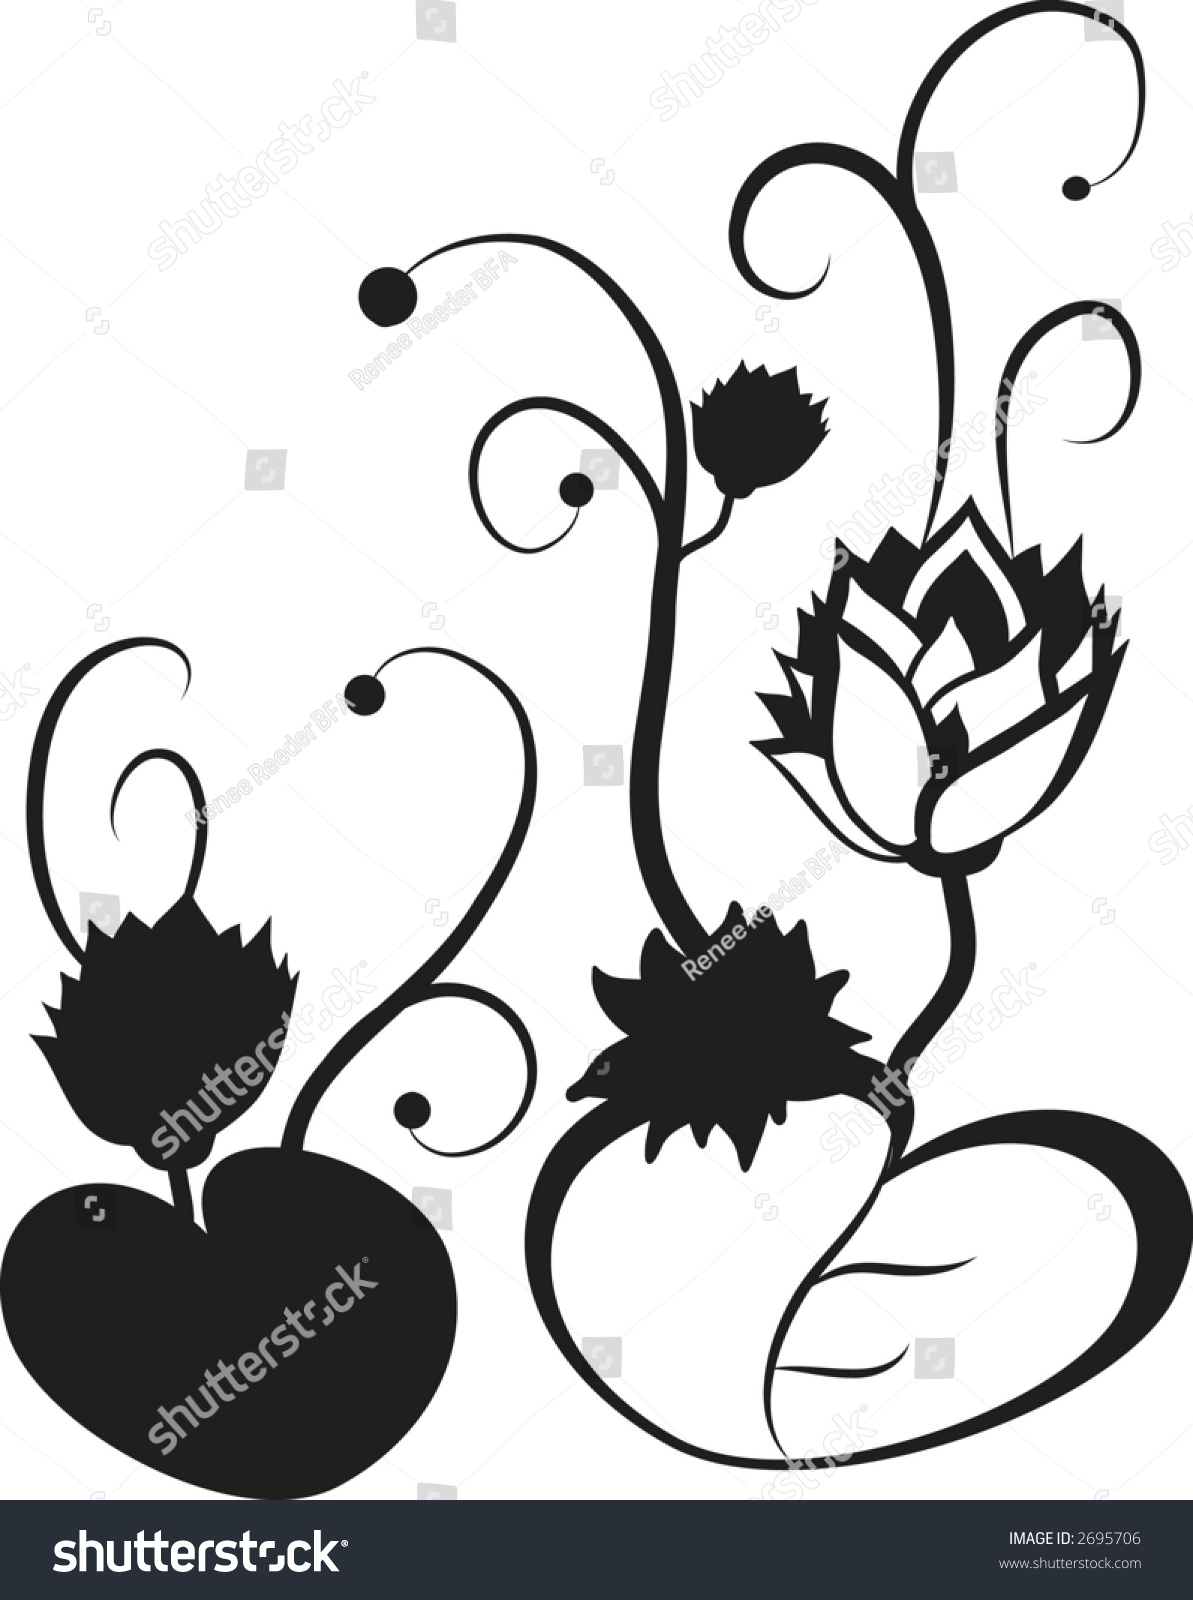 Stylized illustration lotus flower design element stock vector hd stylized illustration of a lotus flower design element izmirmasajfo